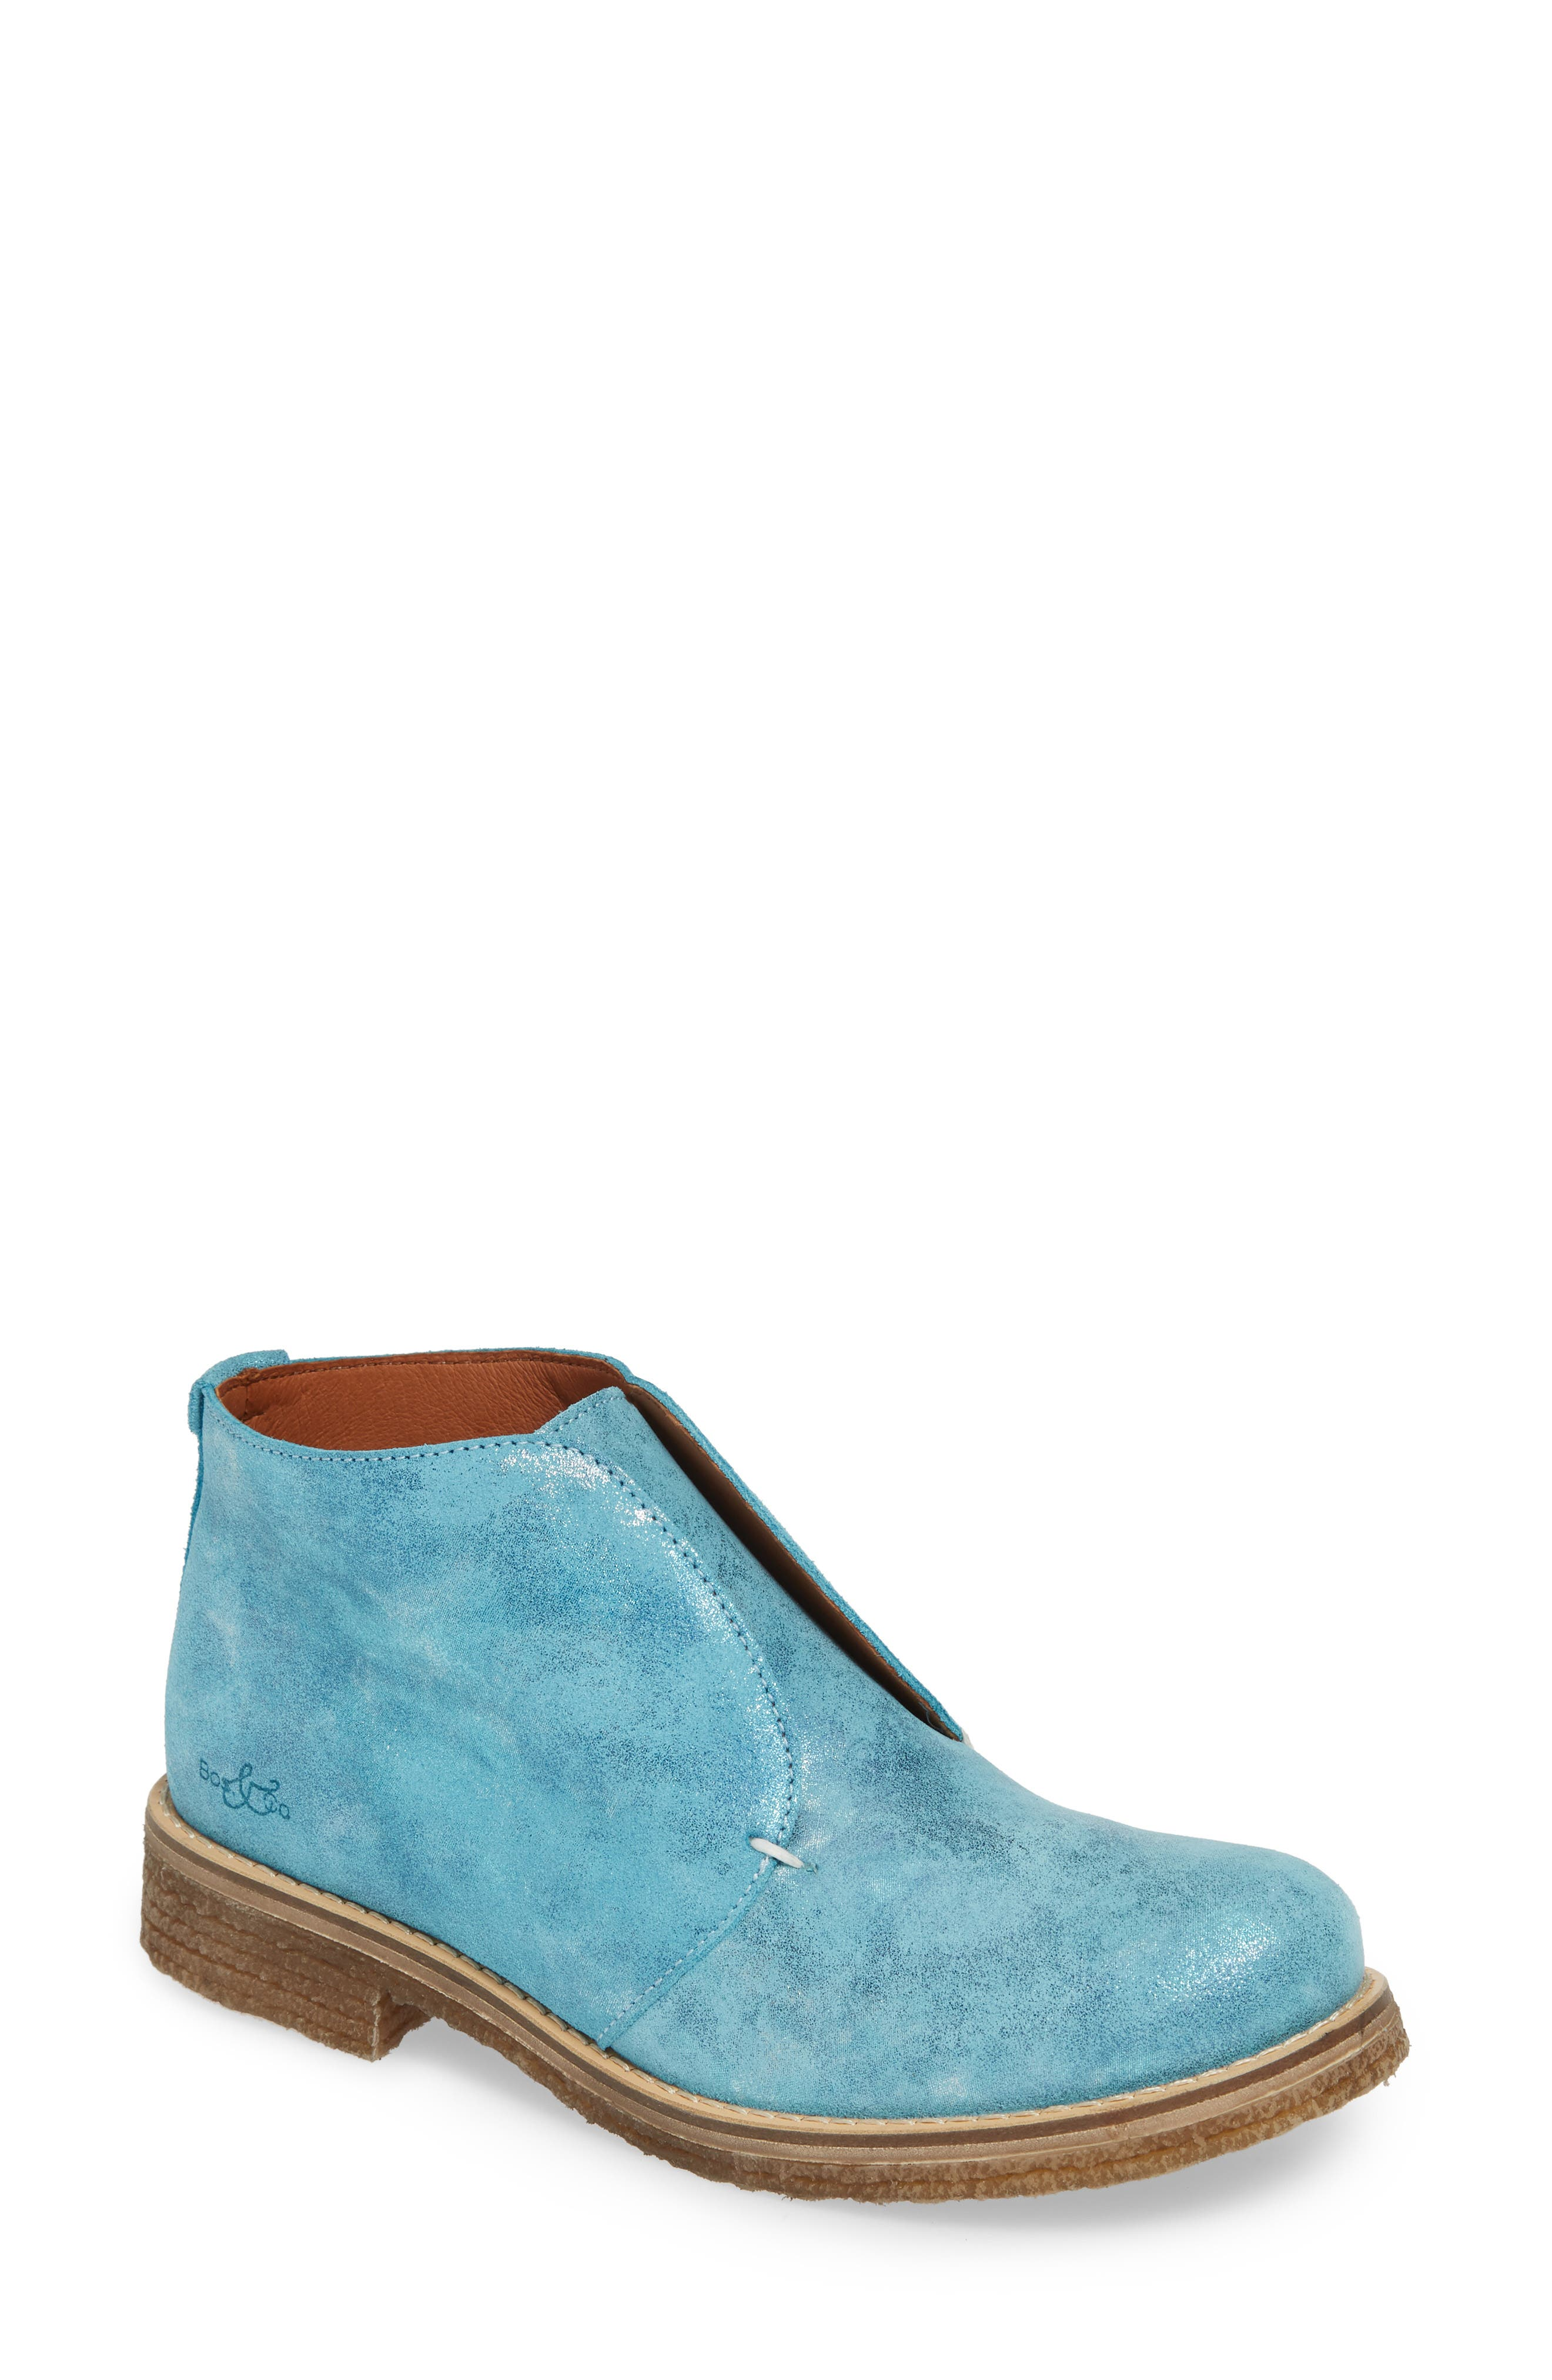 Bos. & Co. Tvol Laceless Chukka Boot, Blue